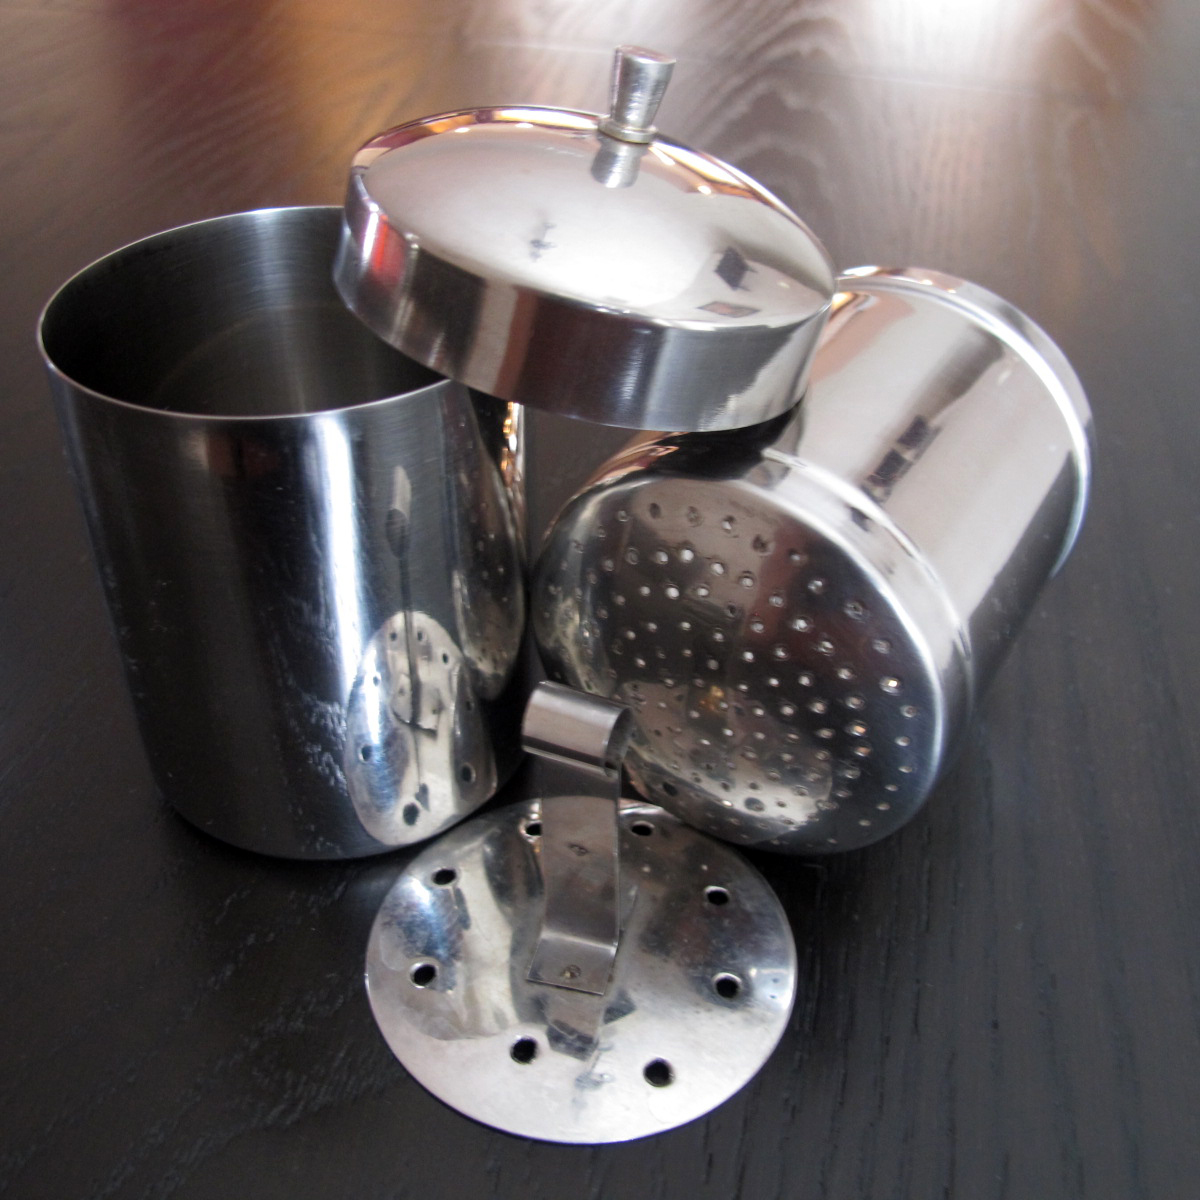 Filter Coffee Maker How To Use : South-Indian Filter Coffee Eatomaniac :)